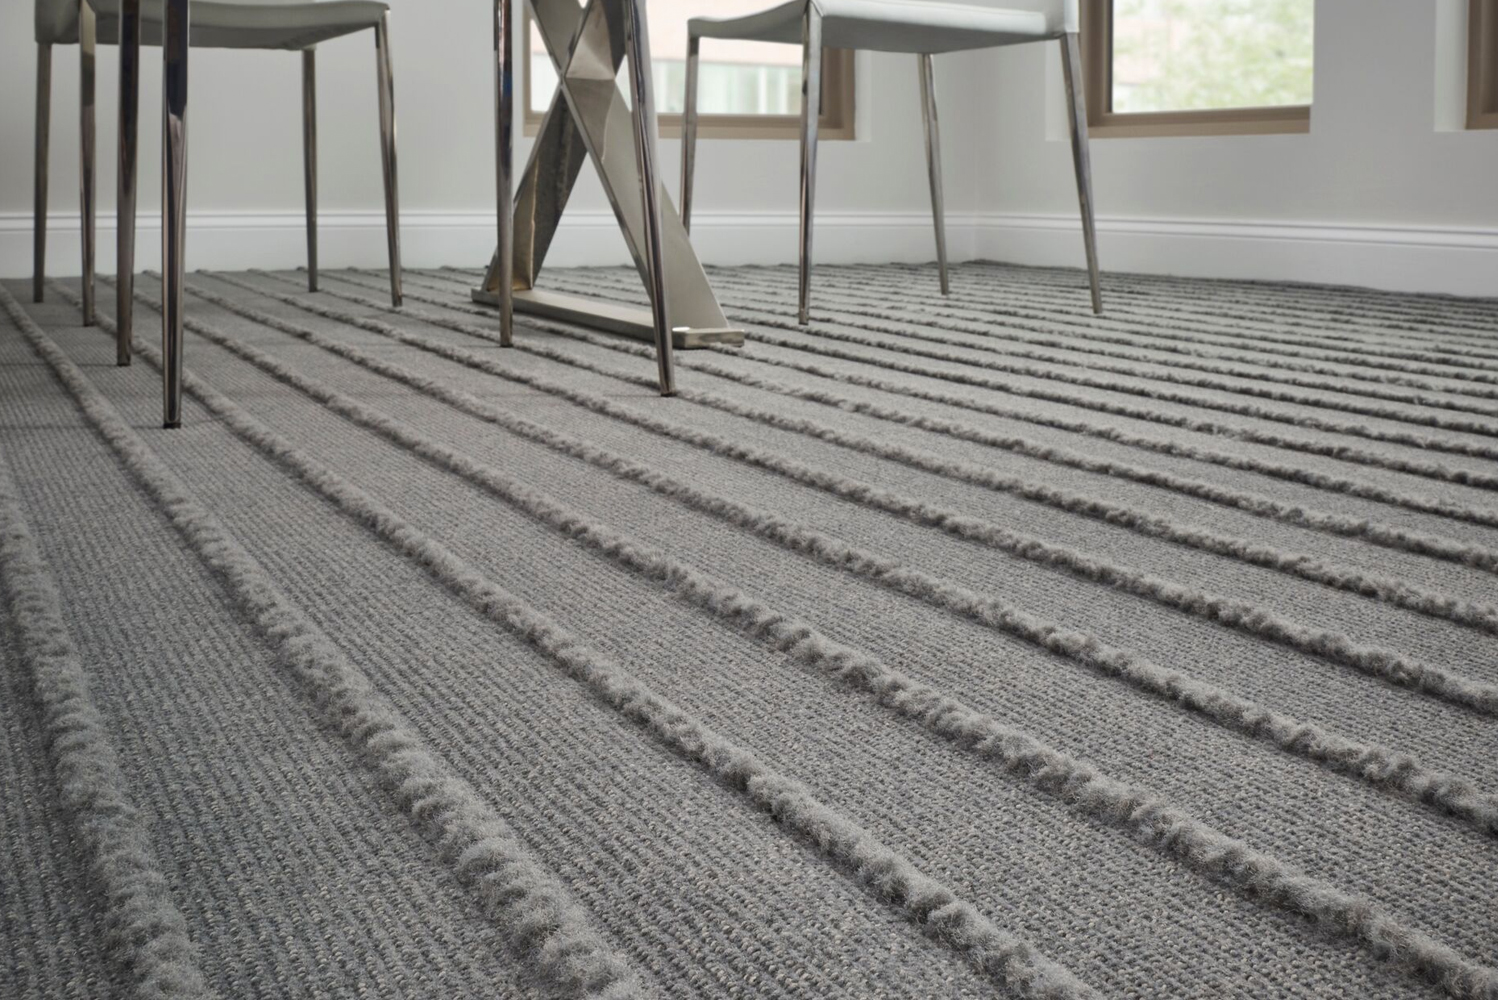 The Woven Fringe Collection is fluorine free, using Eco-Ensure (C2C Gold Material Health certified as a stain resistant treatment).